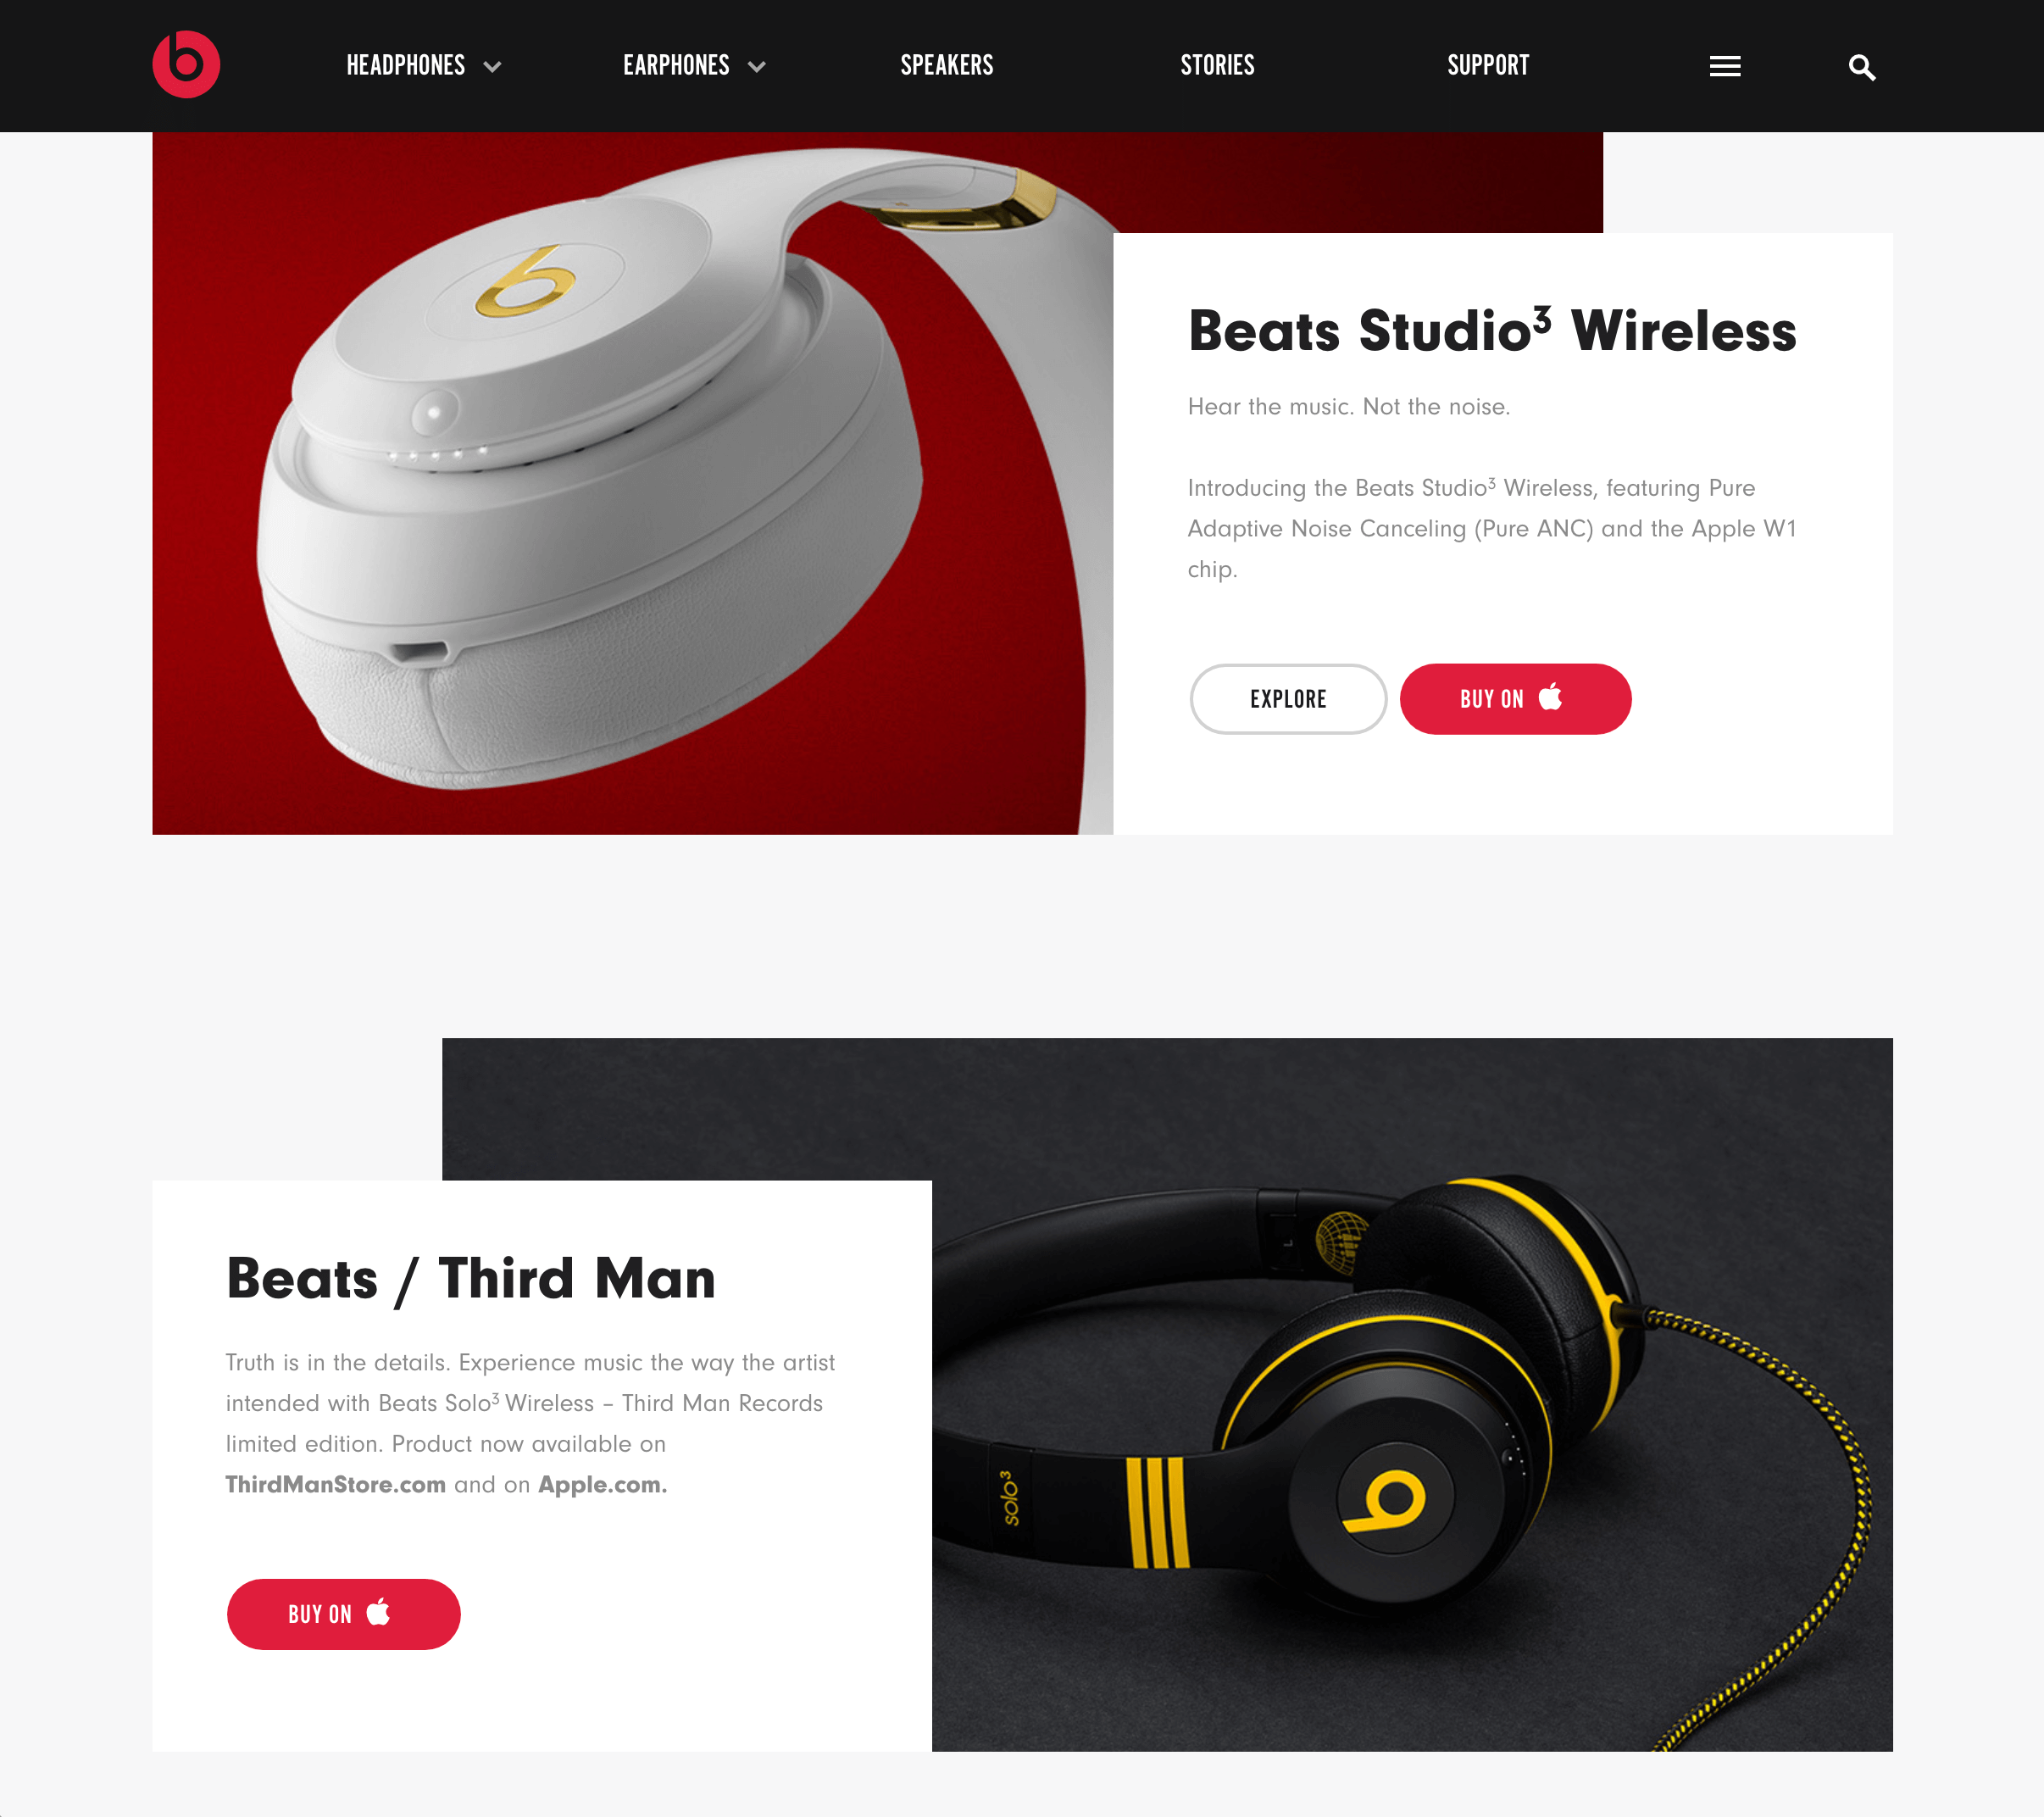 Another screenshot of the Beats by Dre website